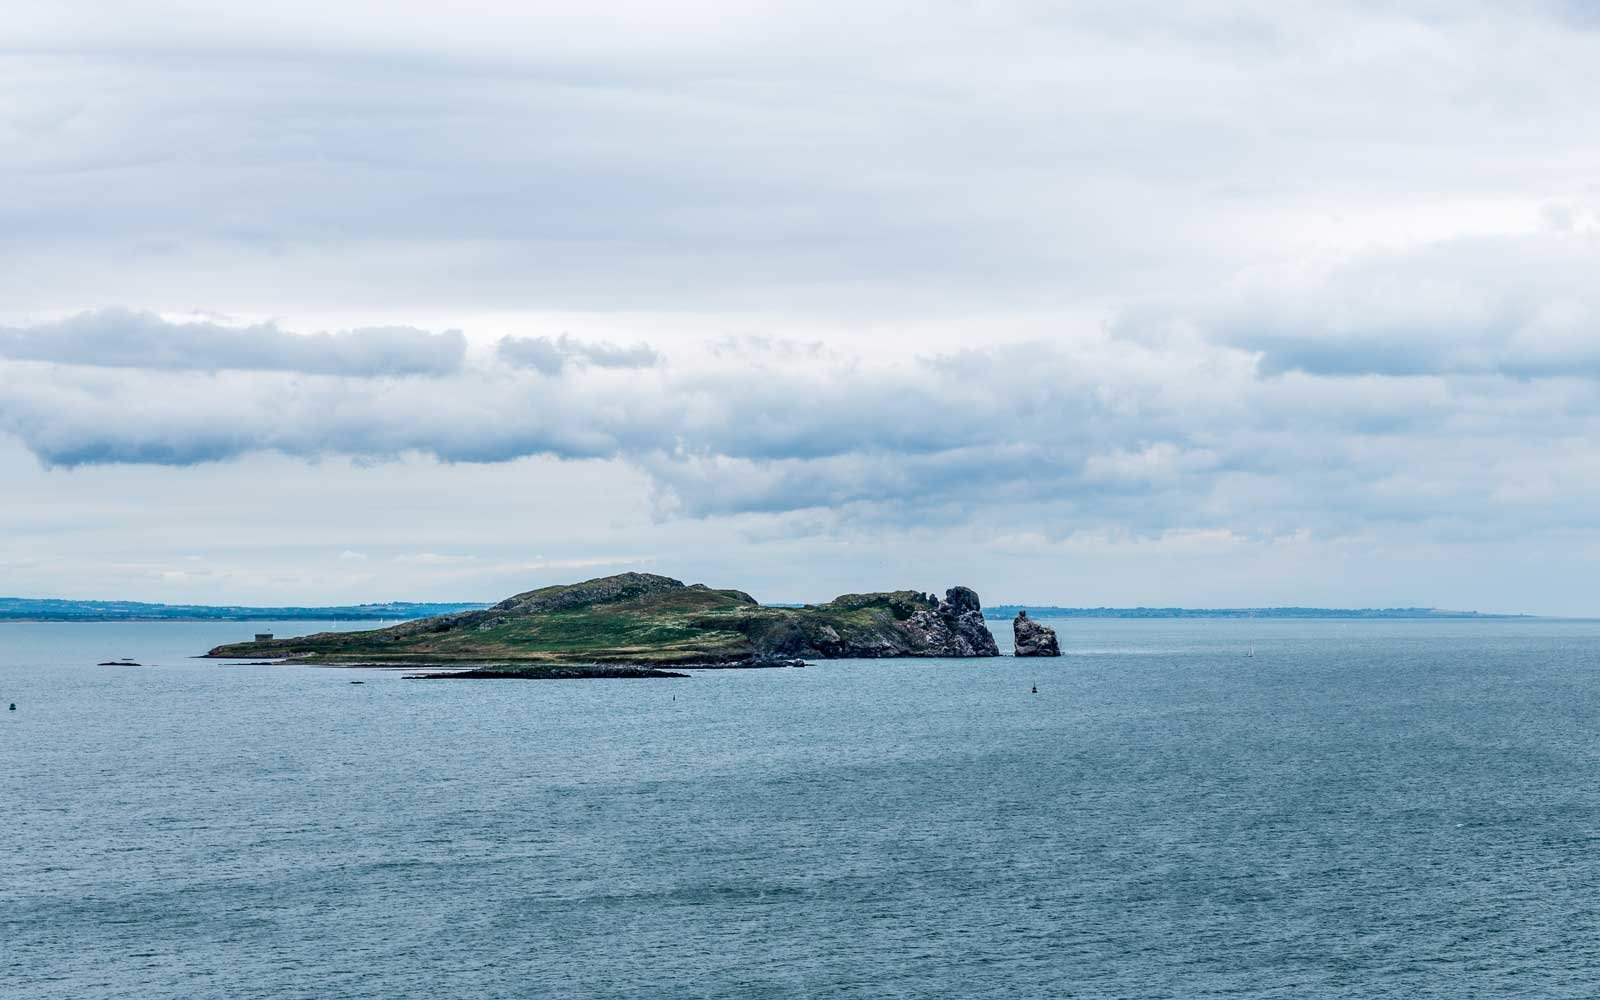 View of Ireland's Lambay Island, home to an unexpected population of wallabies